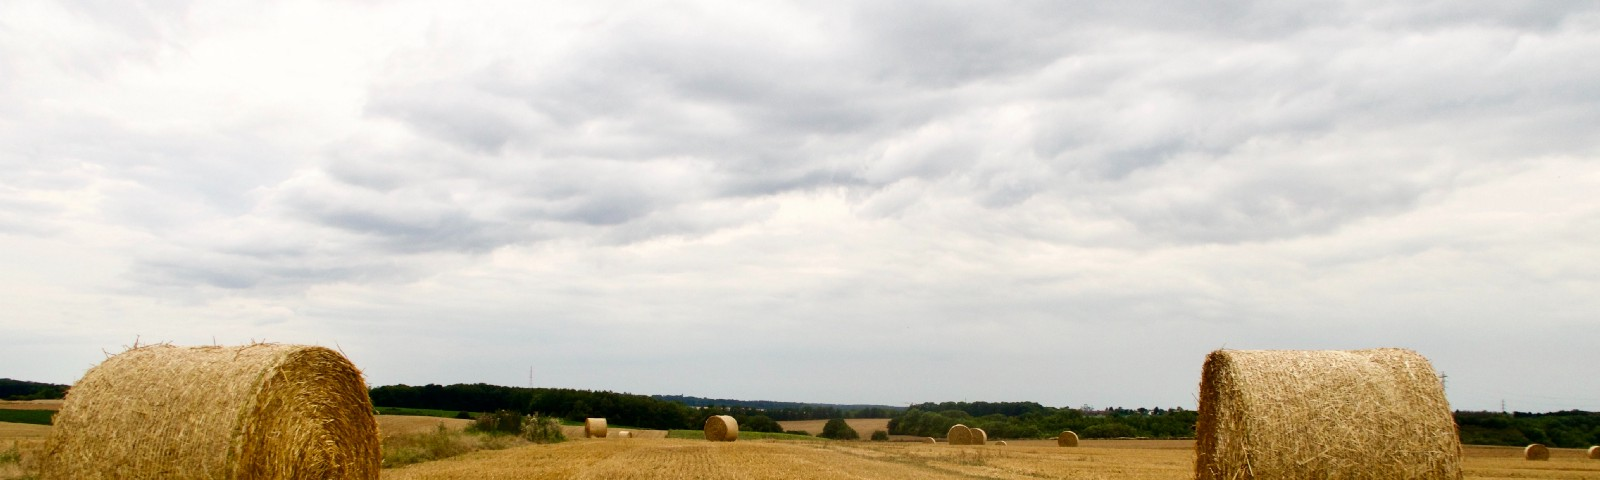 Hay field with hay bales